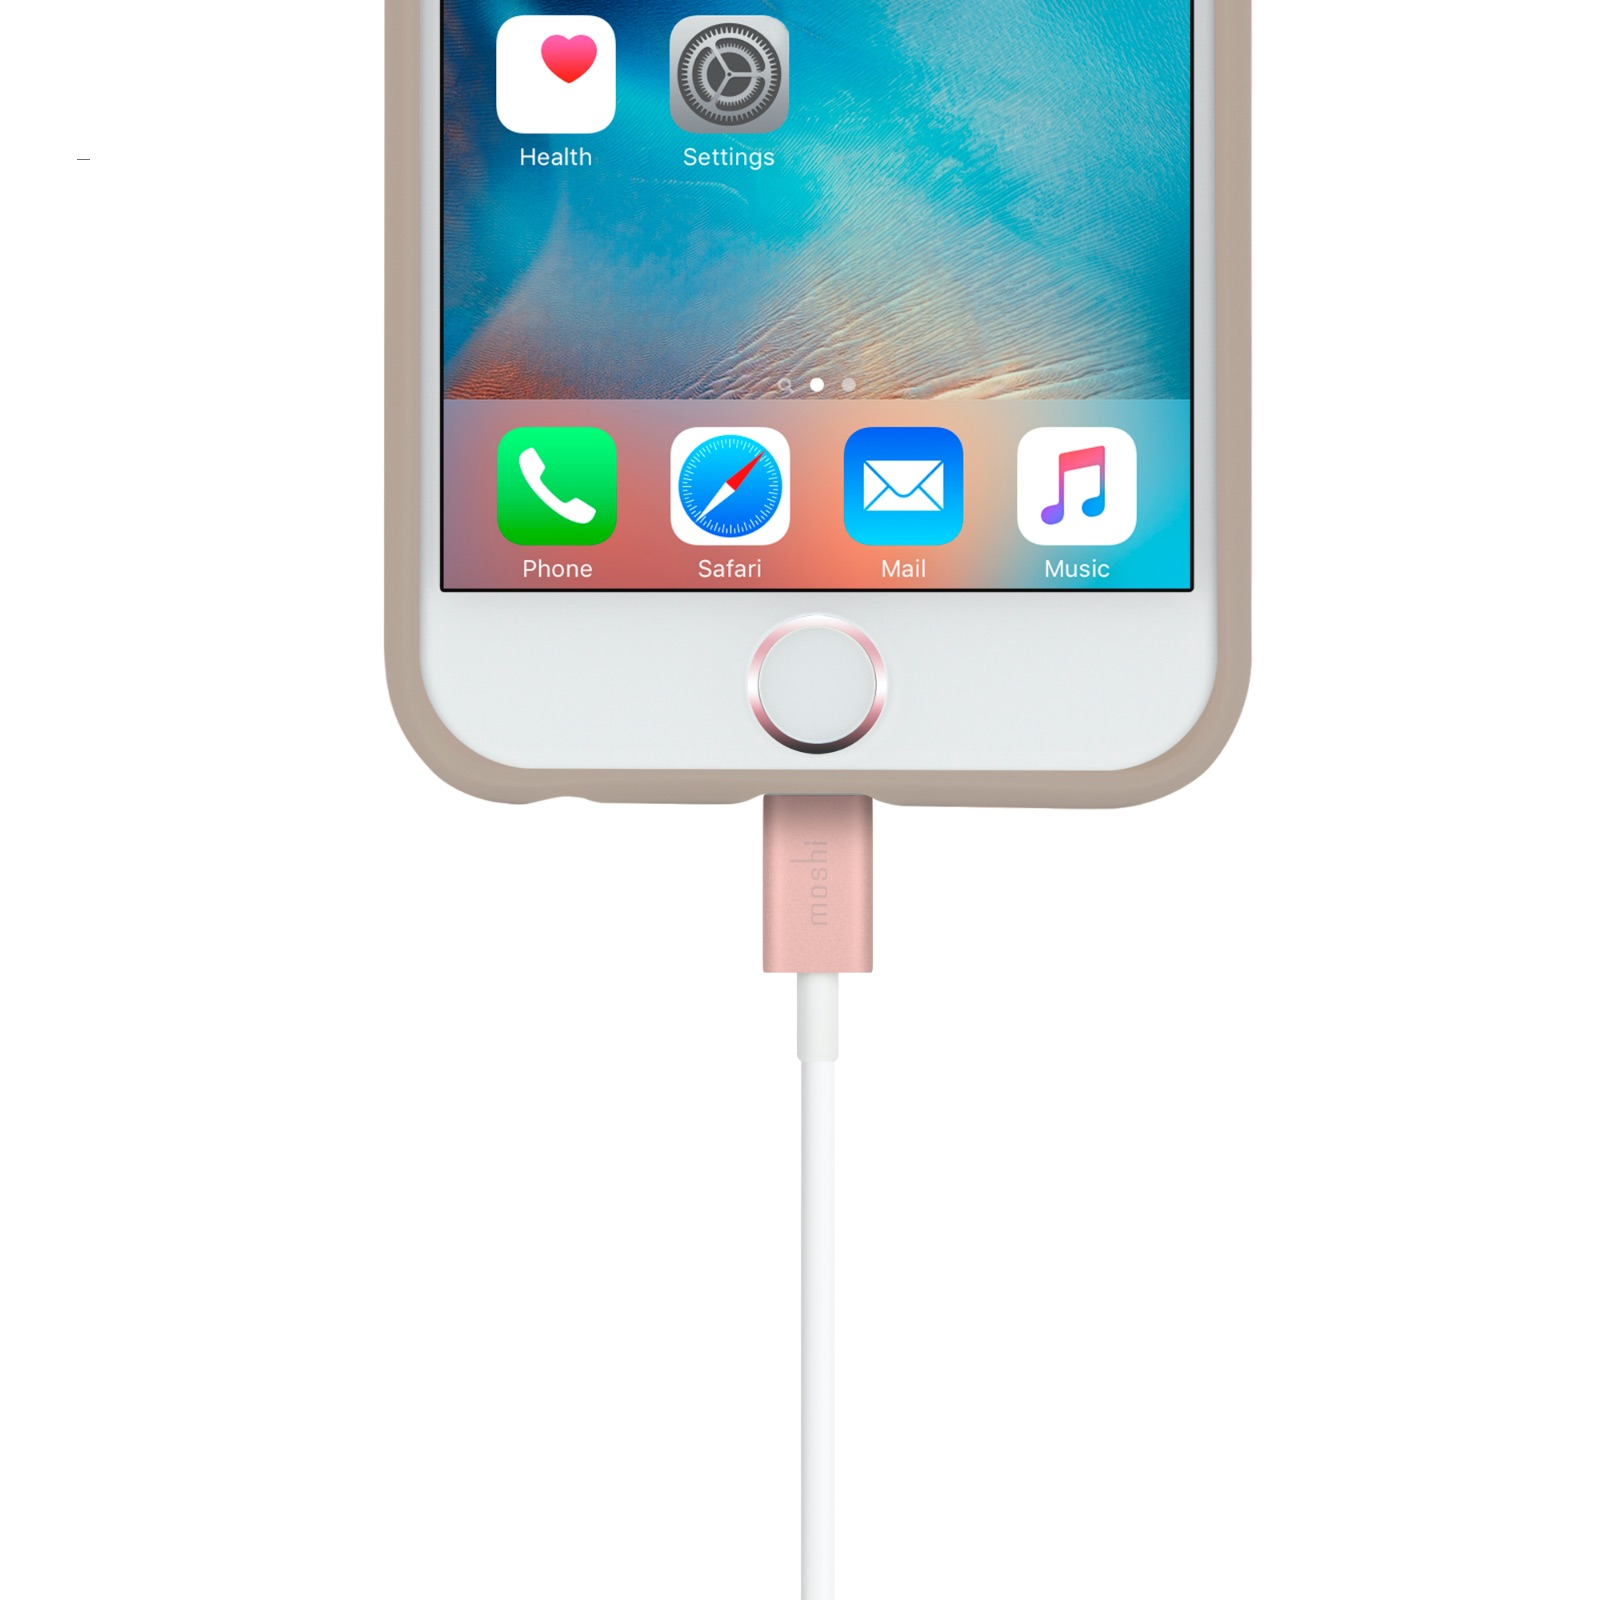 USB-A to Lightning Cable 3.3 ft (1 m)-image